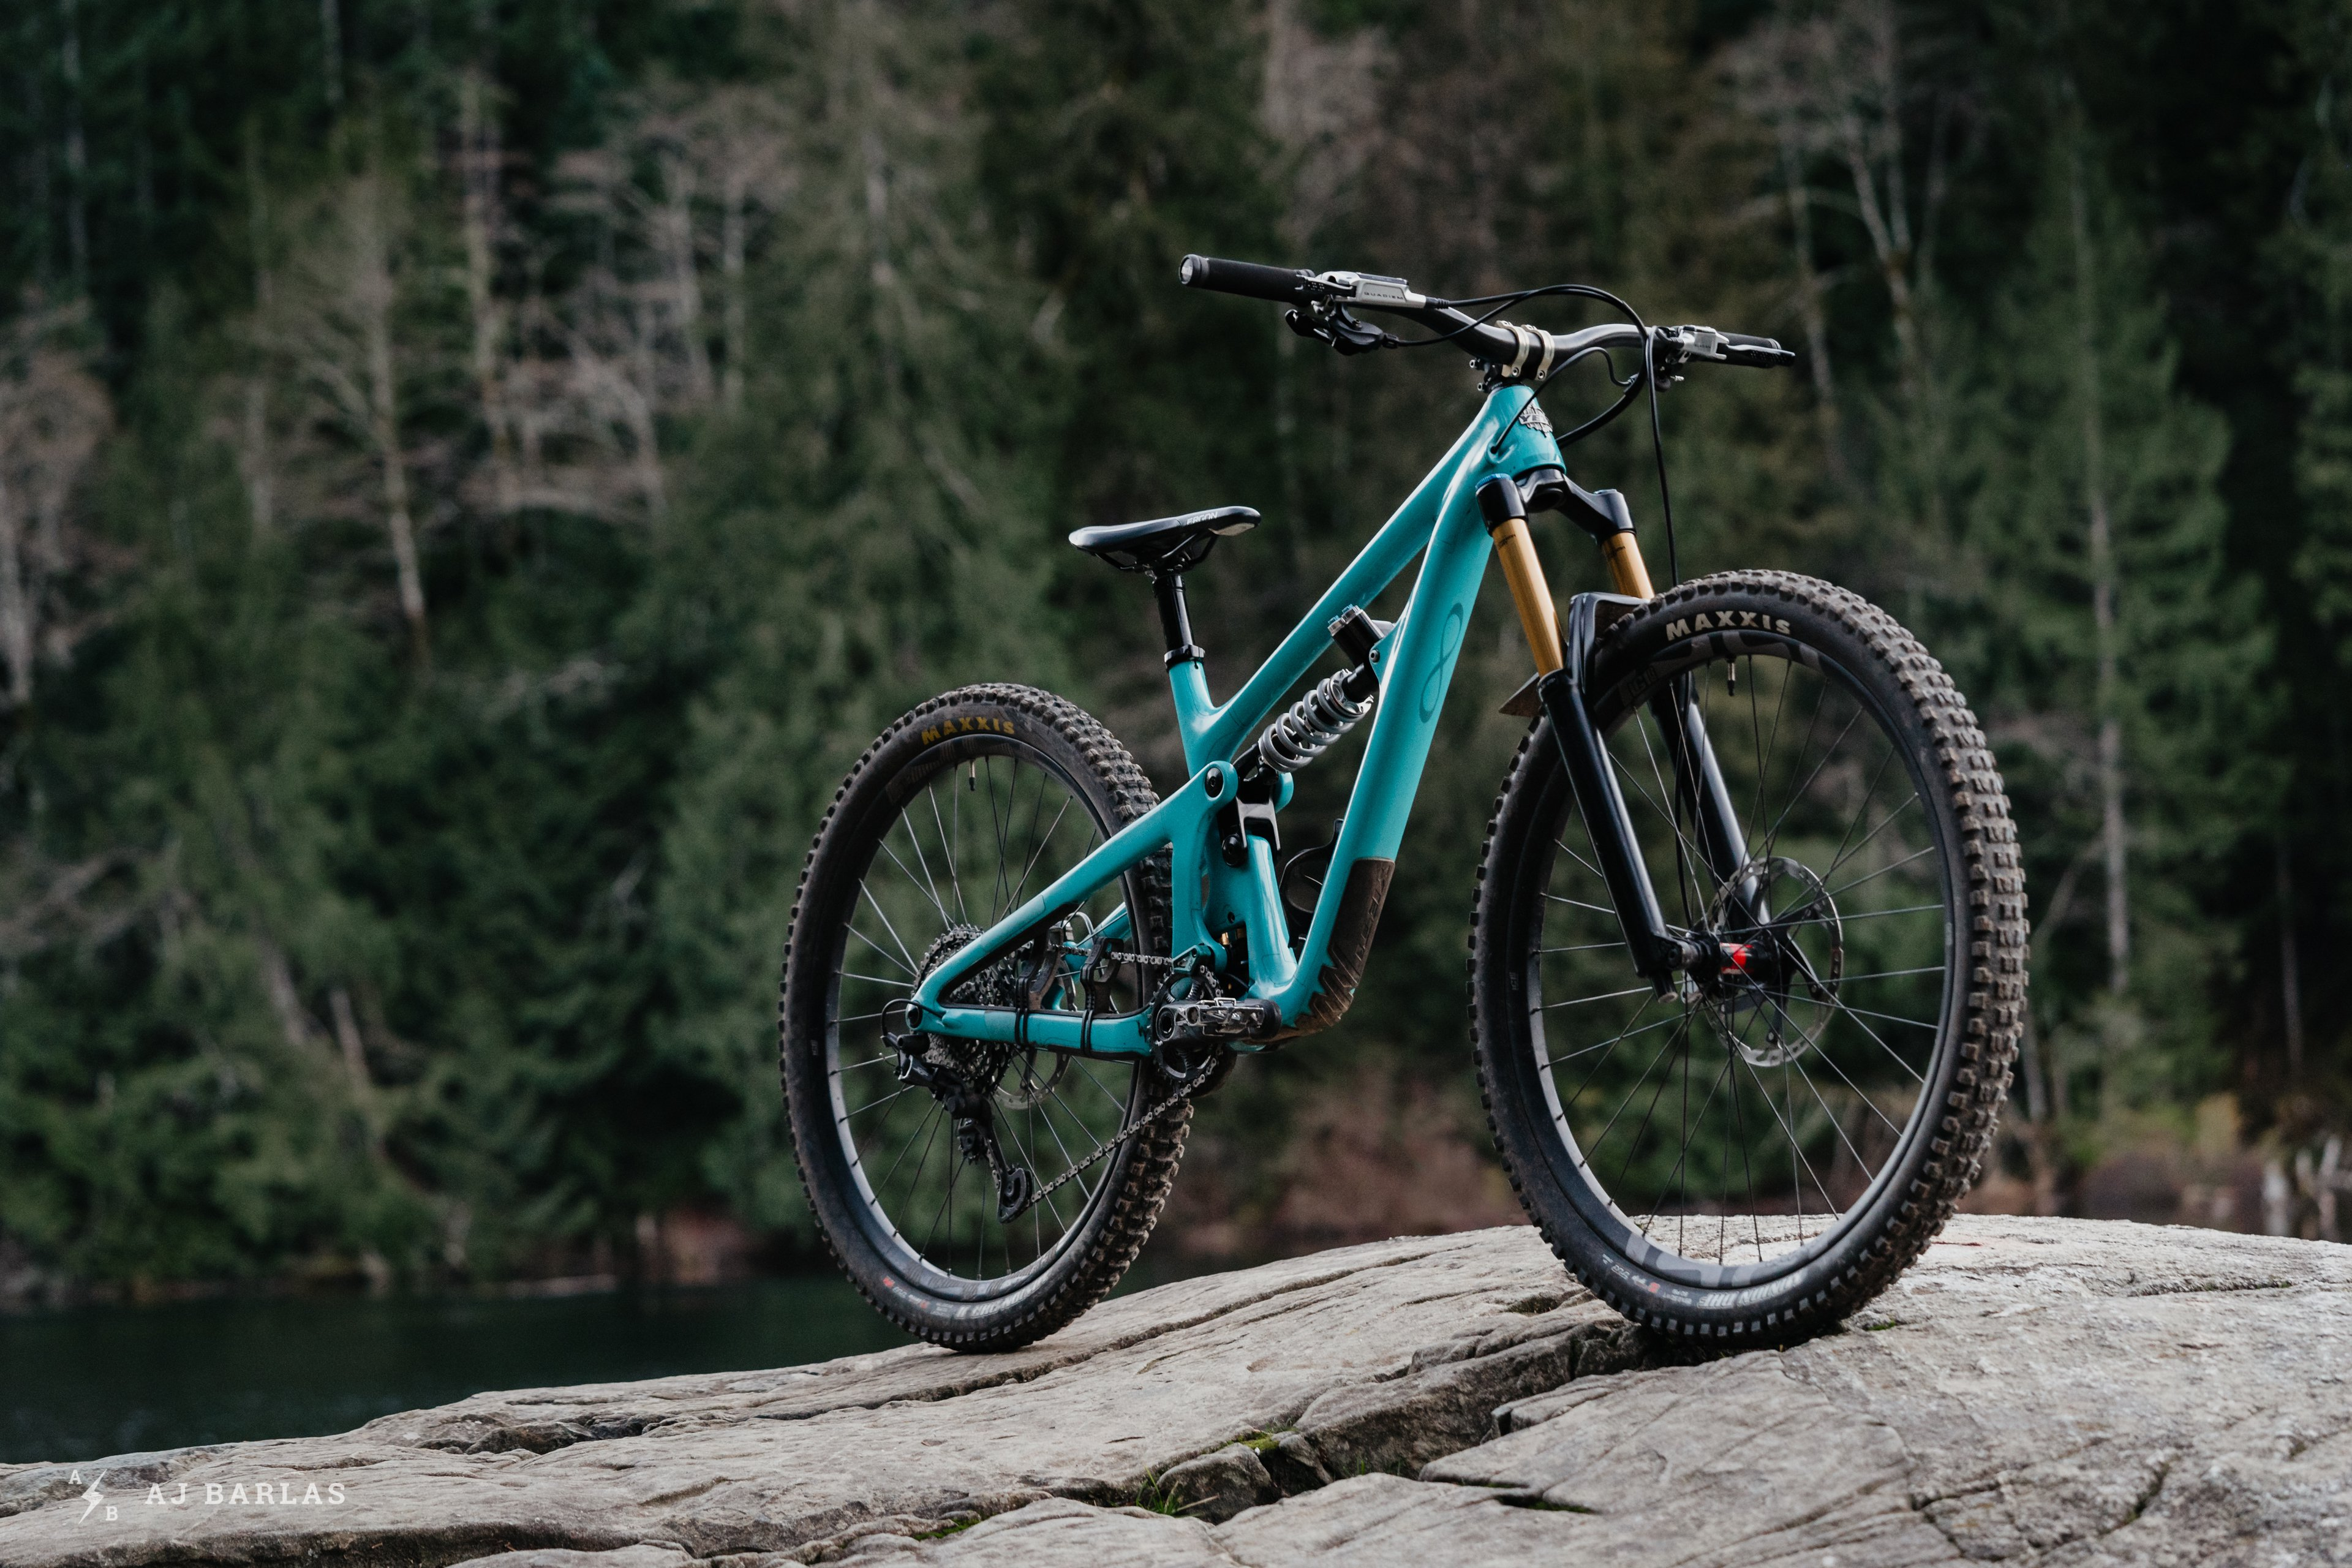 david-fournier-yeti-sb150-nsmb-dream-build-210121-ajbarlas-09651.jpg